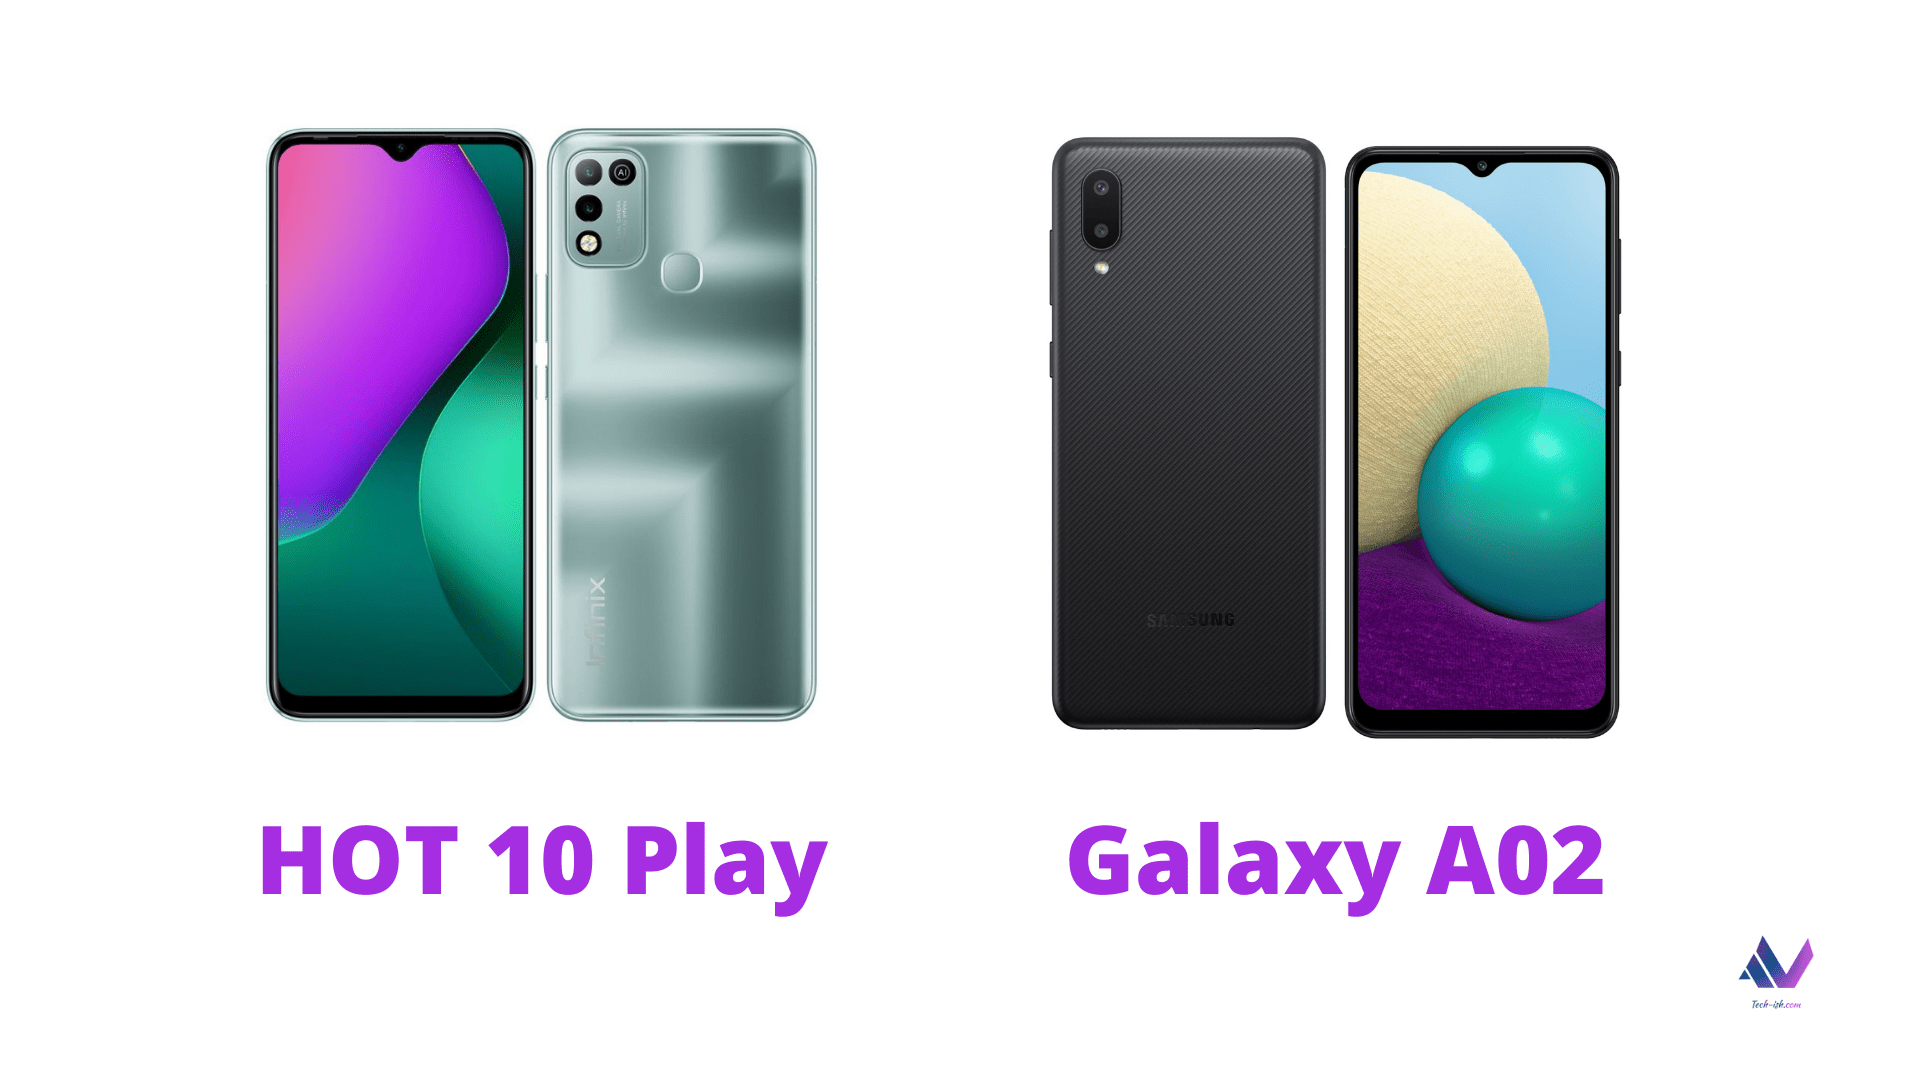 Infinix HOT 10 Play vs Samsung Galaxy A02 Specifications Comparison